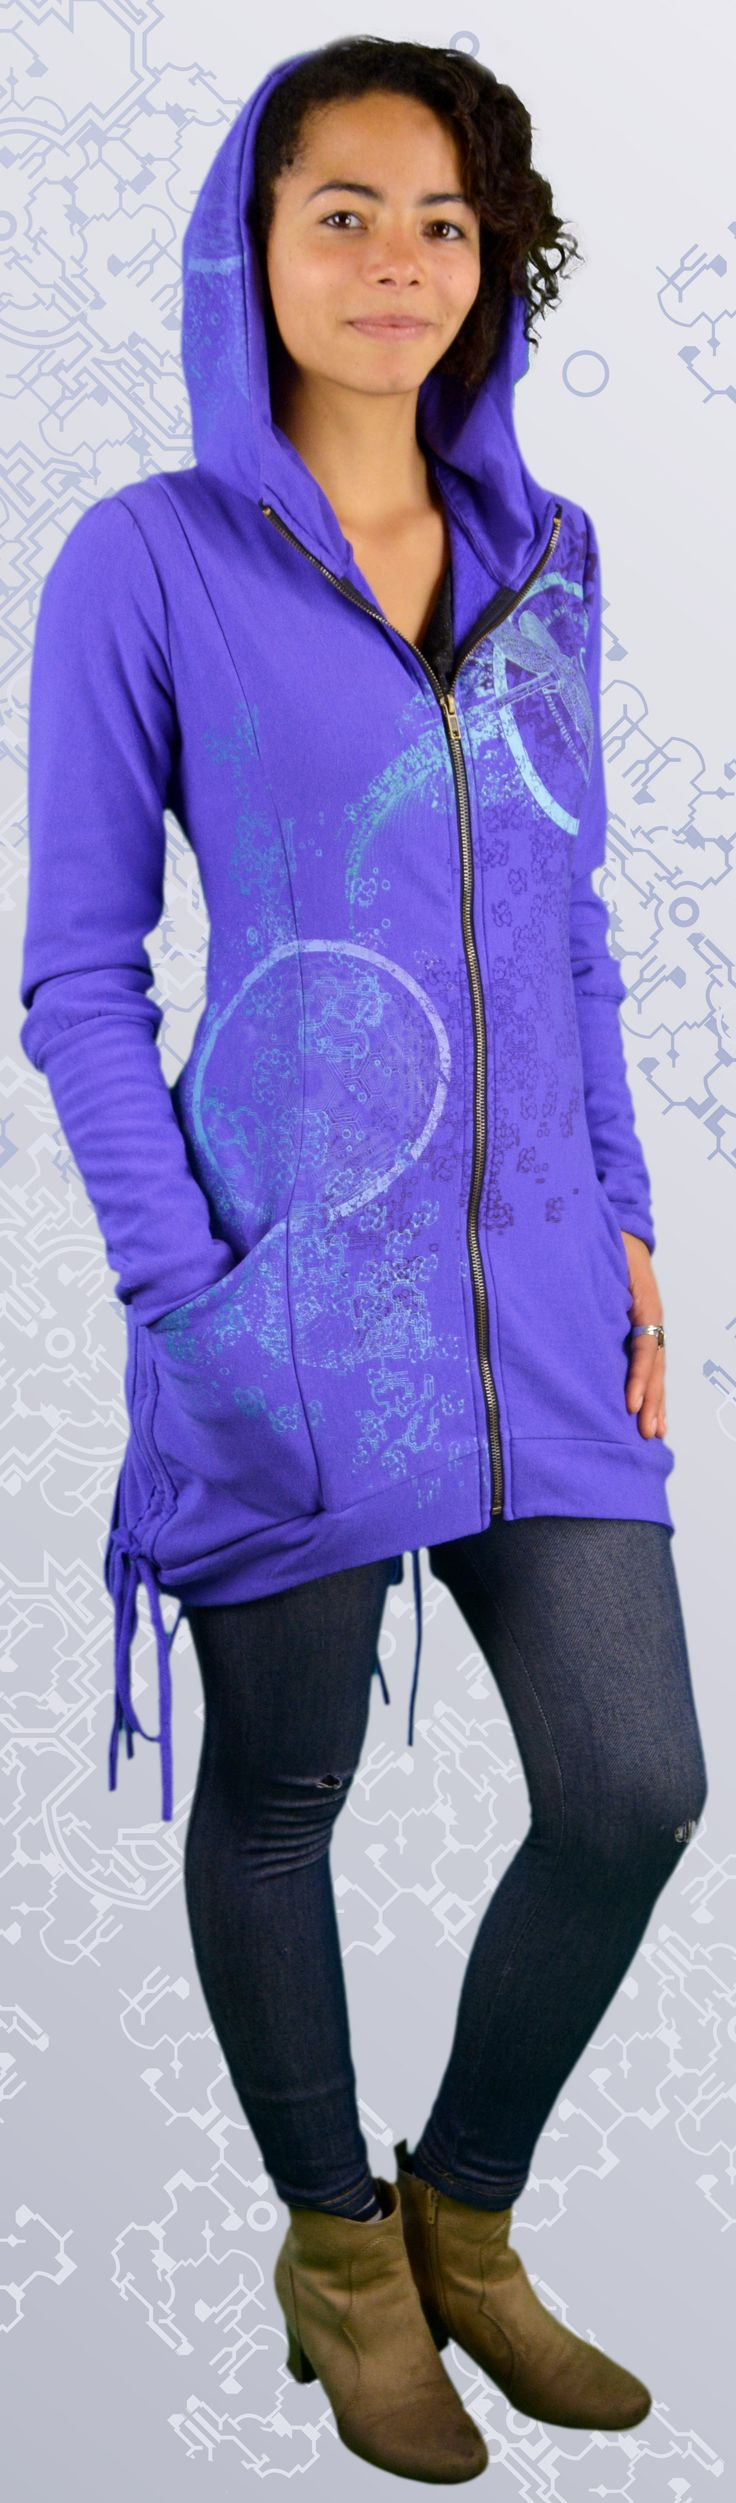 Bamboo Bustle Jacket made in Canada from organic fabric. A unique women's hoodie printed with dragonfly art and sacred geometry, mandalas, i-ching designs.